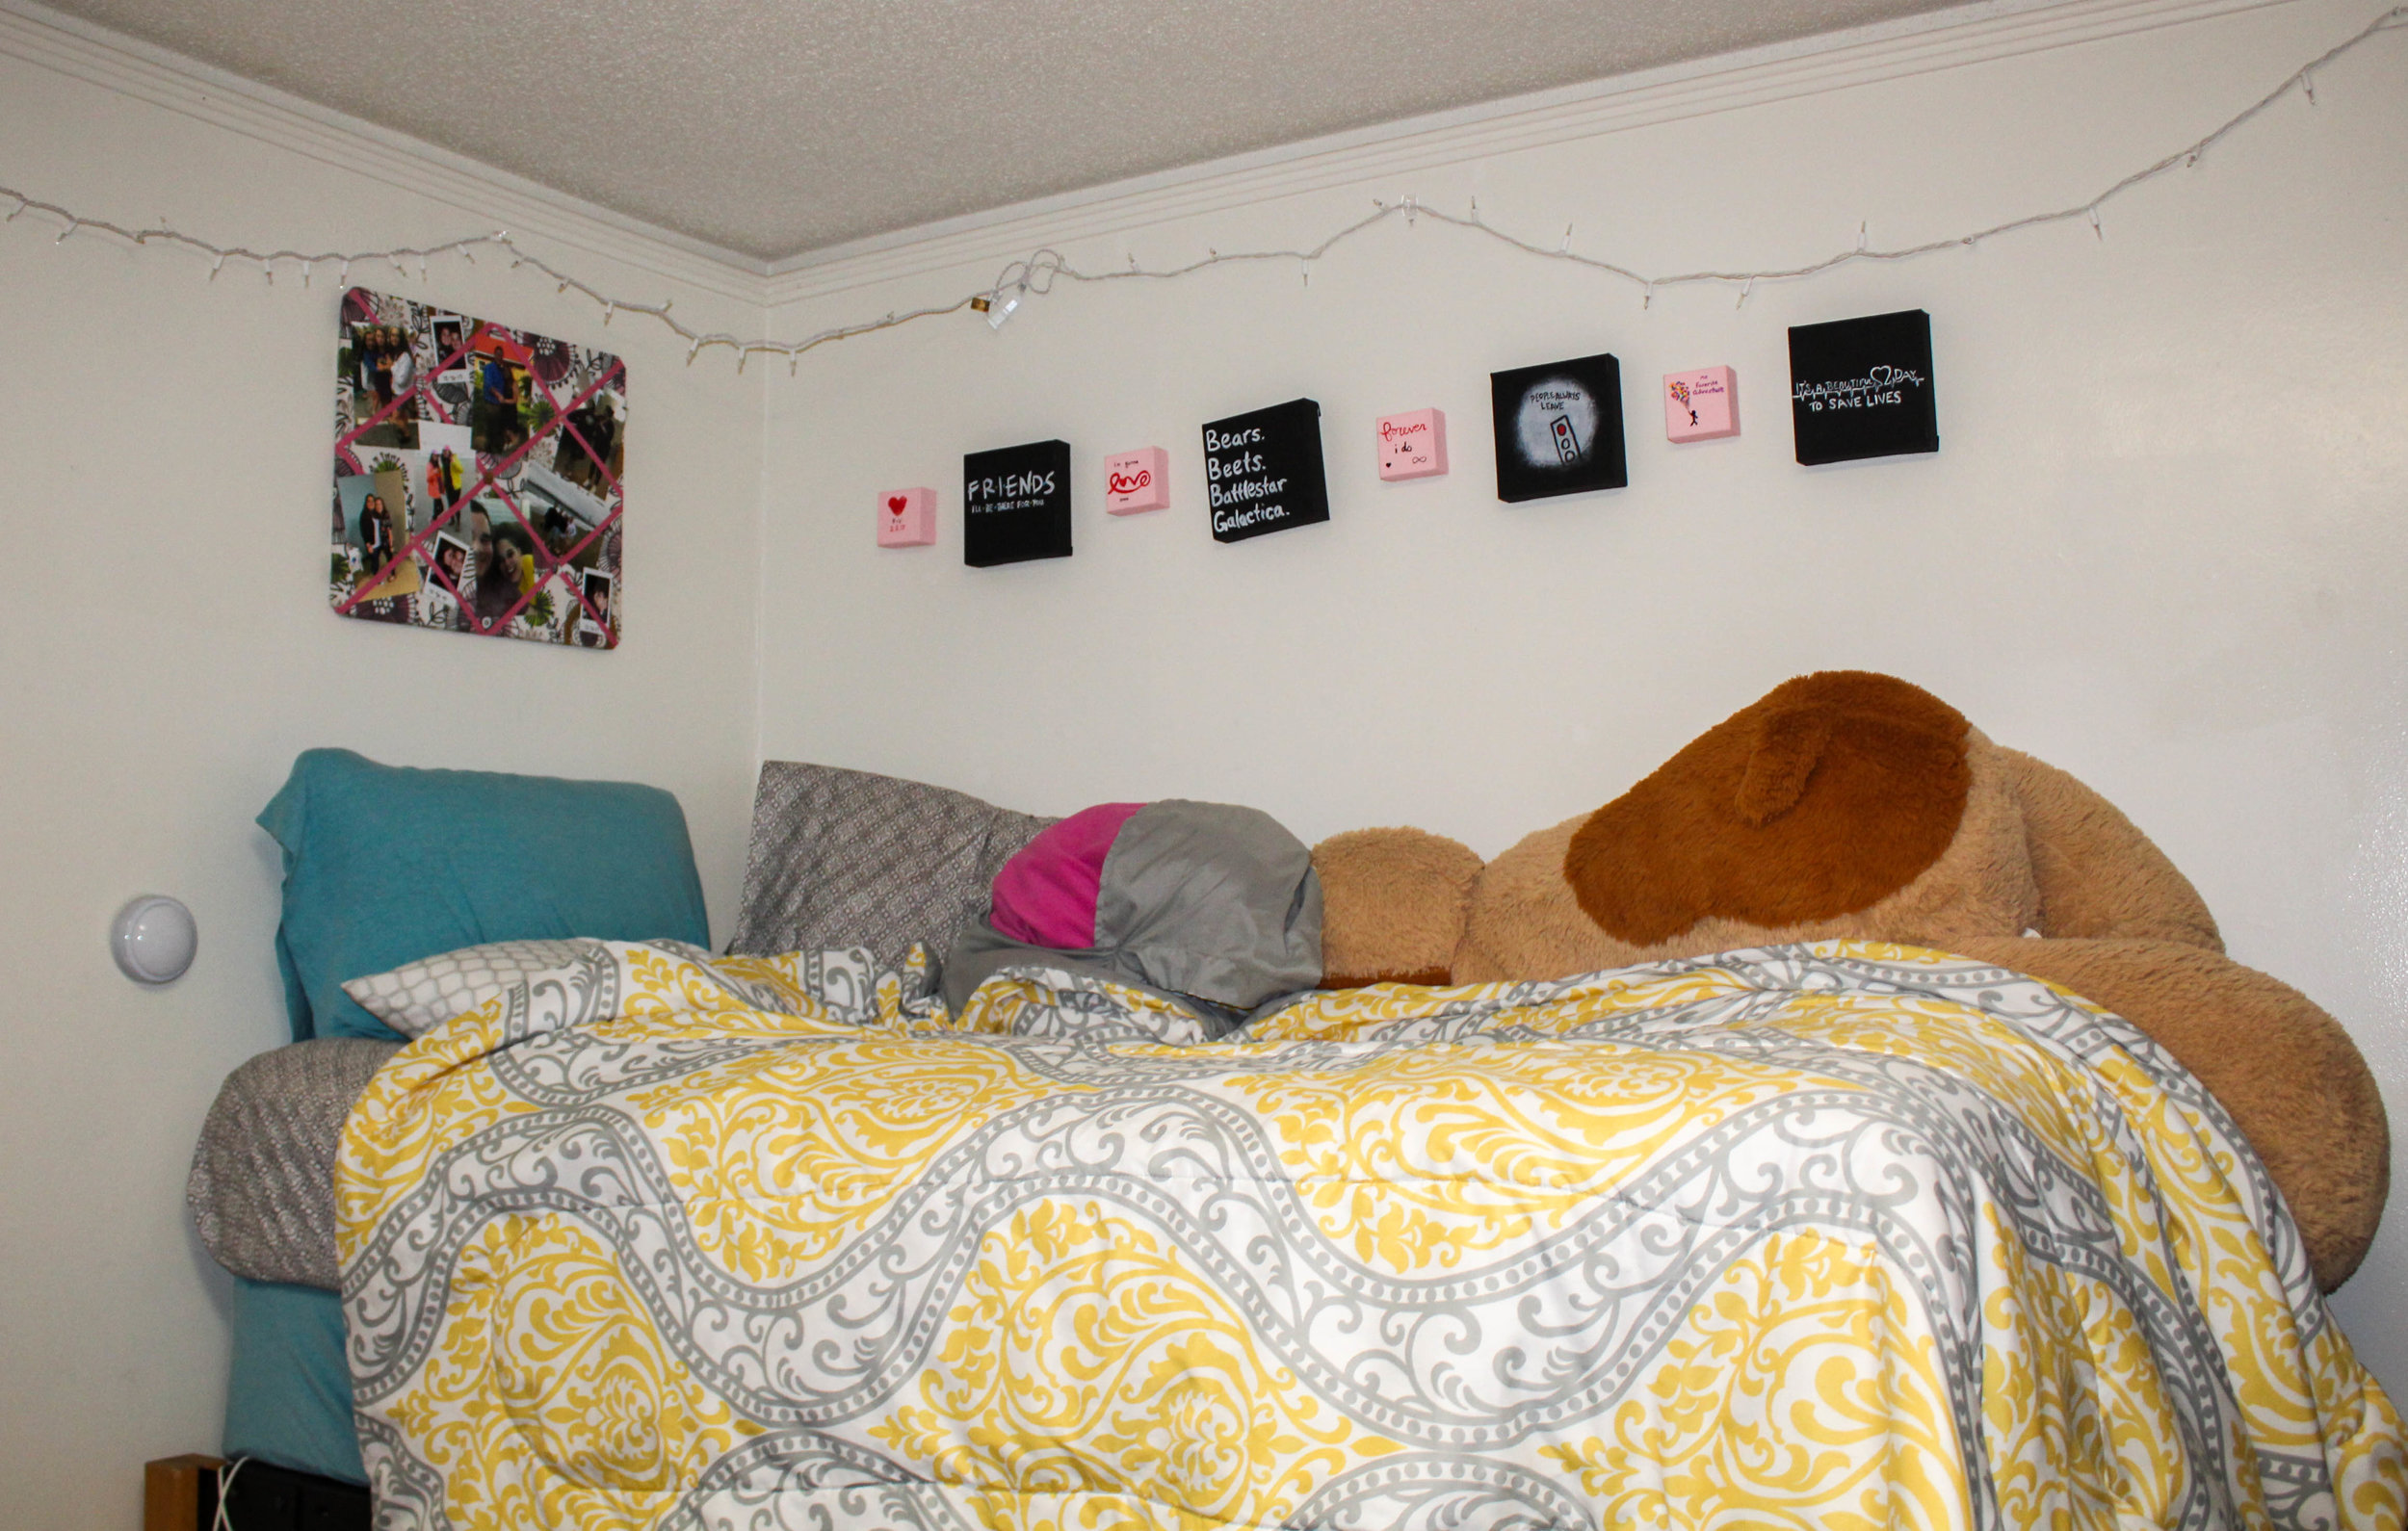 Victoria Darr, junior, shows off her favorite color, yellow, by the choice of vibrant comforter.